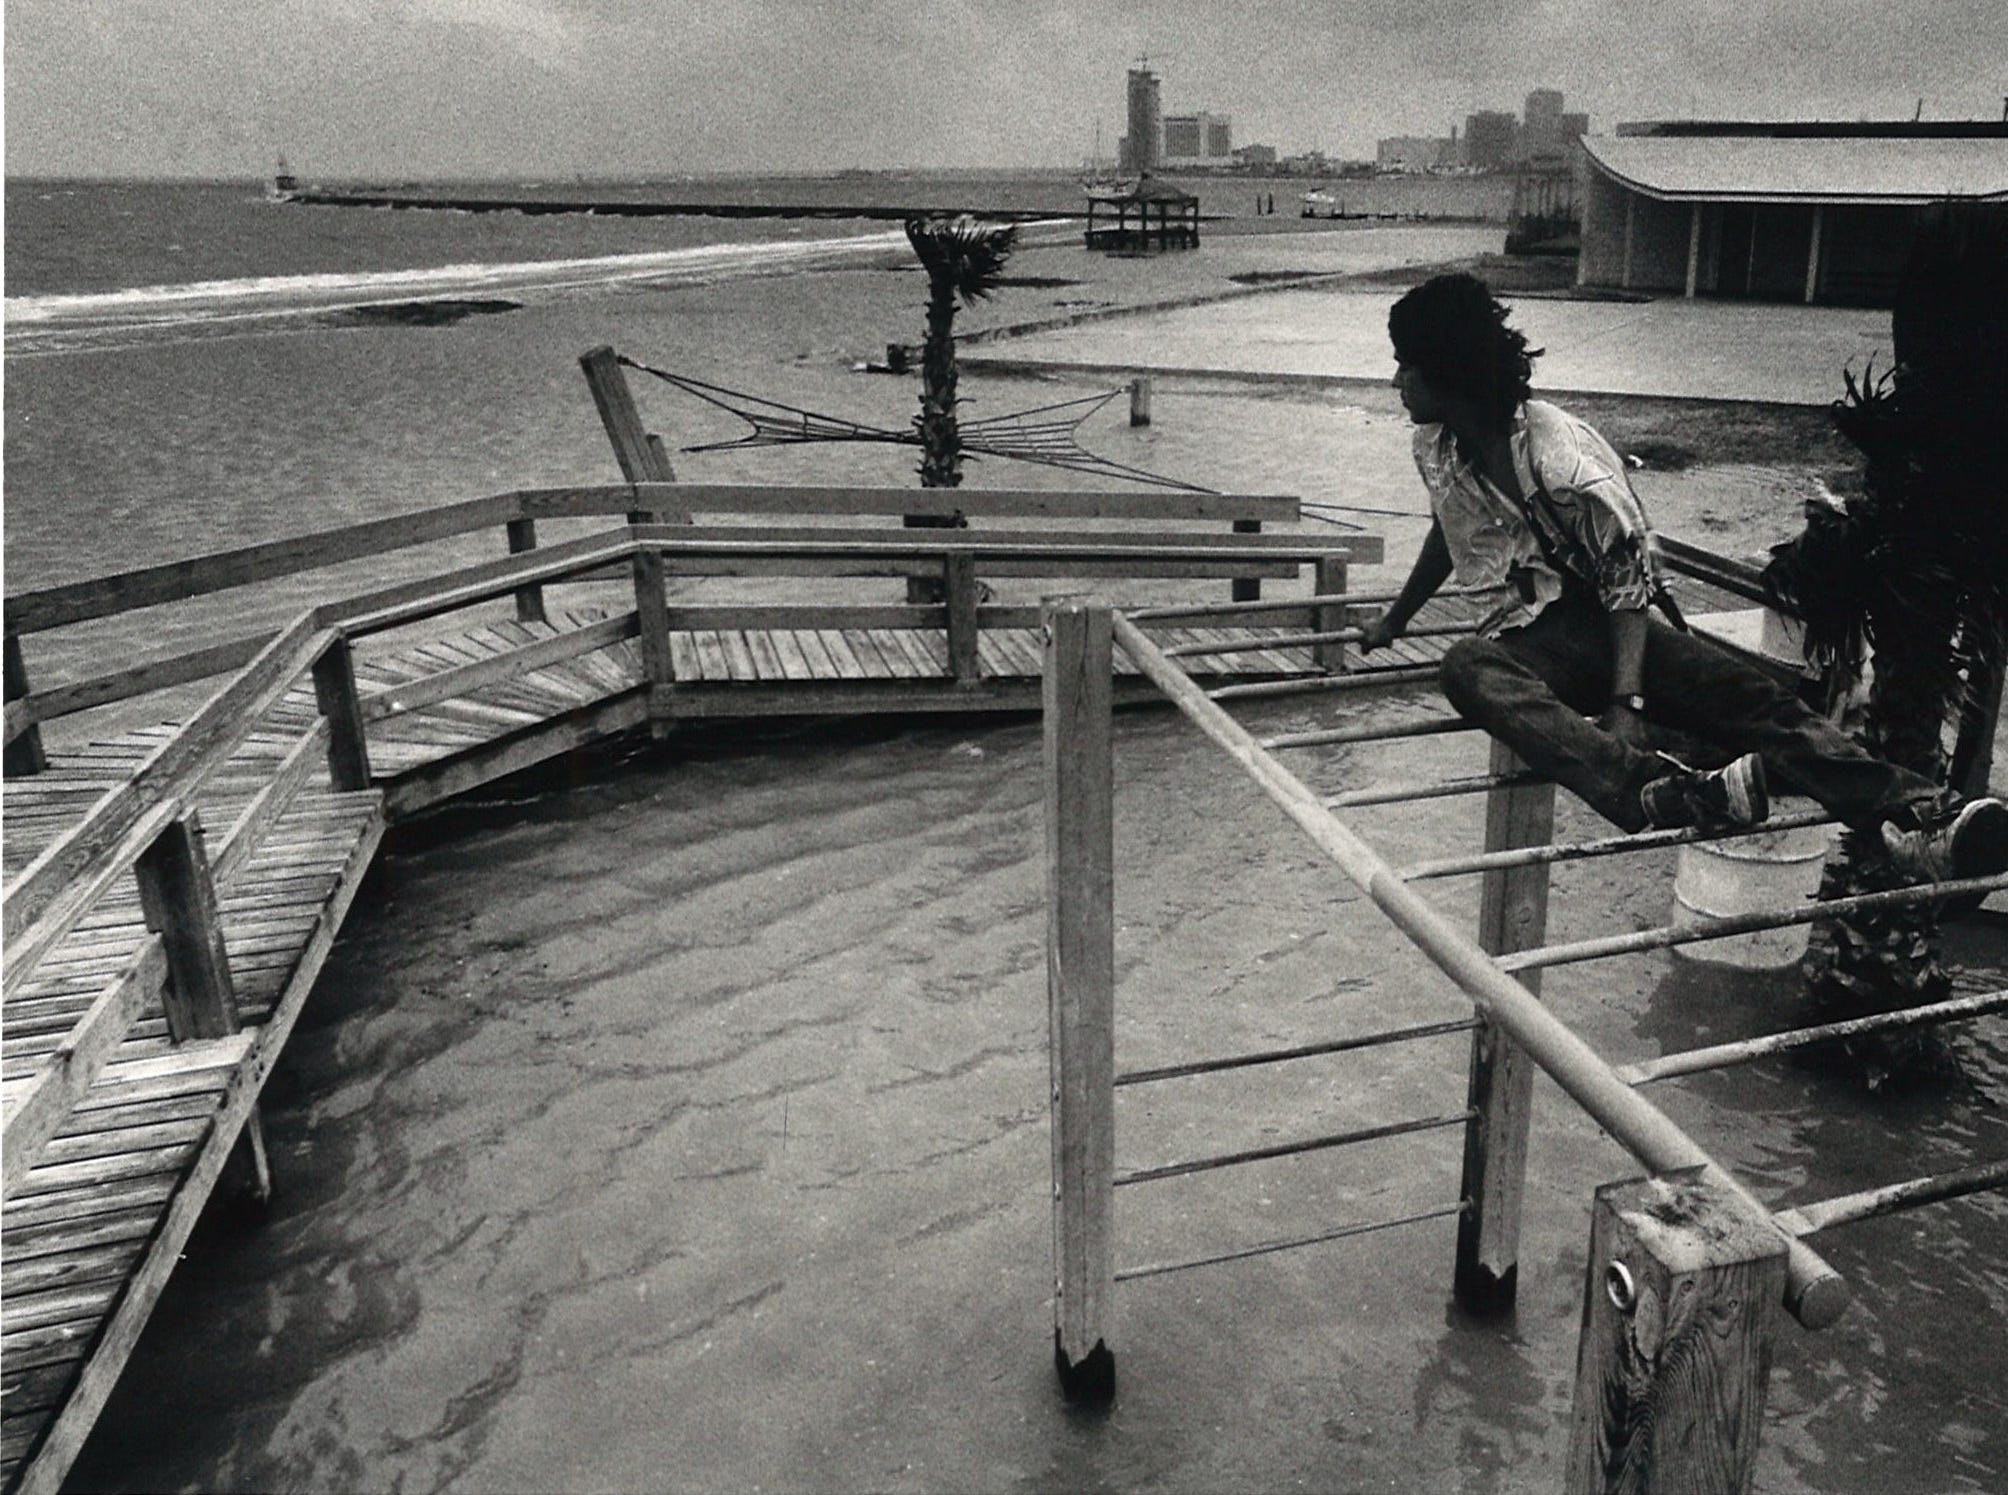 Richard Hernandez, 21, sits atop a flooded playground next to the Sandy Shores Hotel on Corpus Christi's North Beach on May 28, 1987. A combination of high tide, rain and winds flooded areas of North Beach.